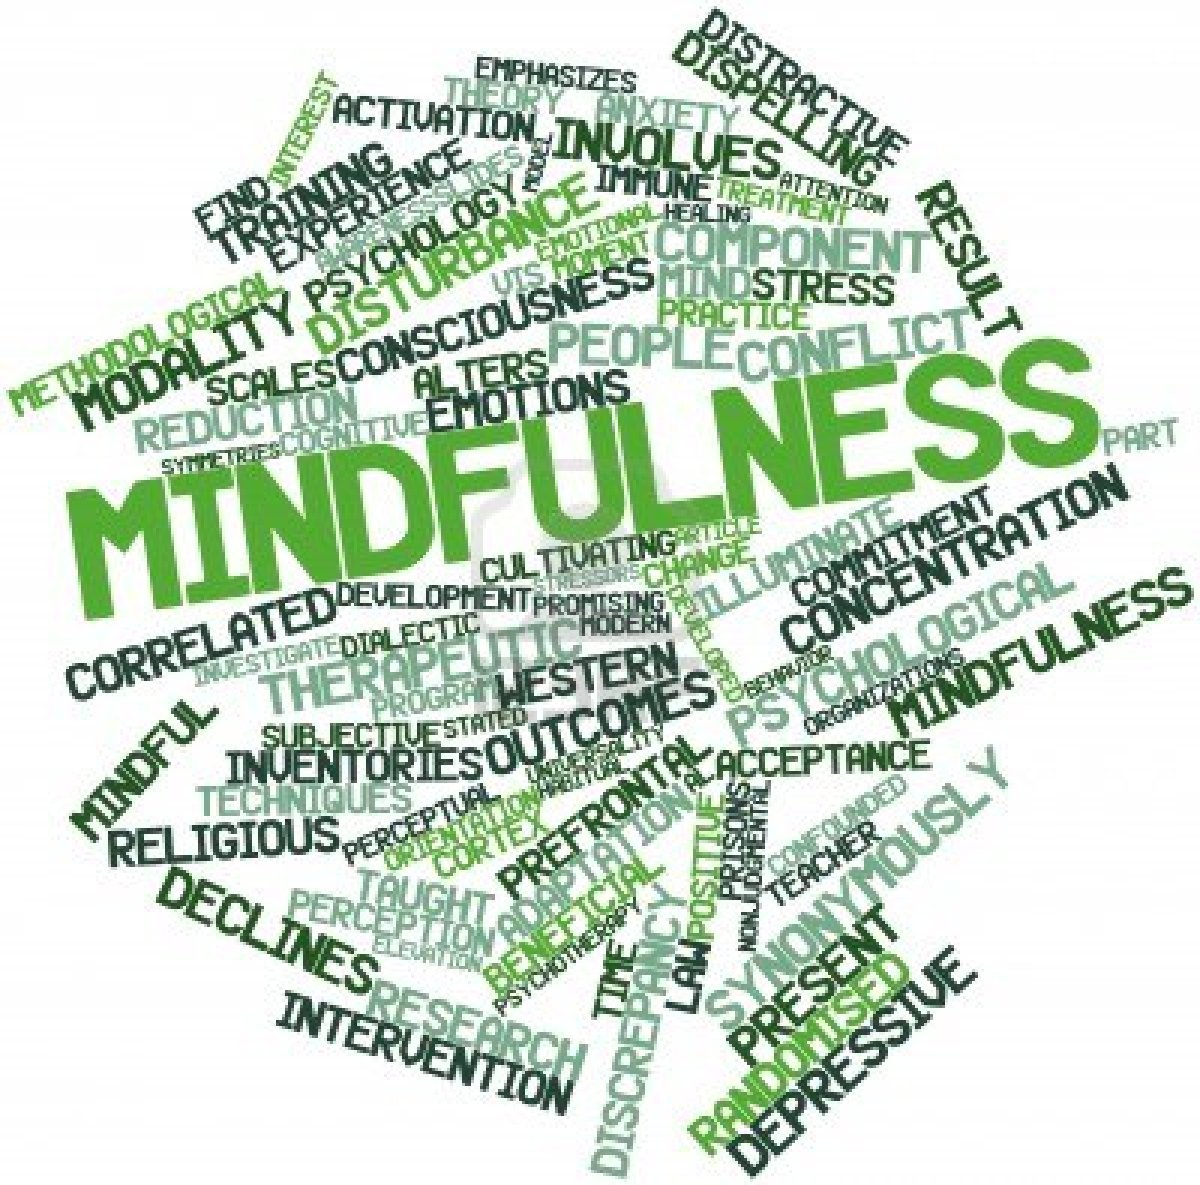 Mindfulness - Van Mind full naar Mindful (3)